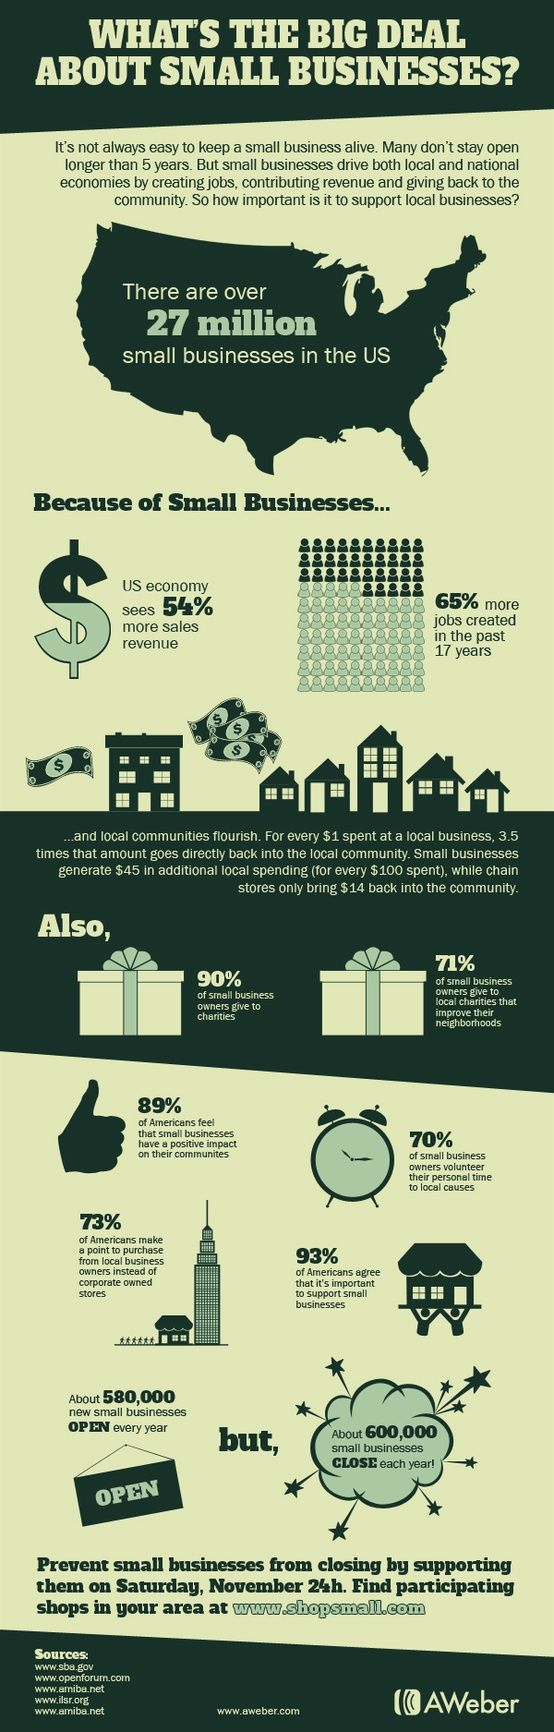 Small Business Saturday - What's the BIG Deal about Small Businesses? #infographic